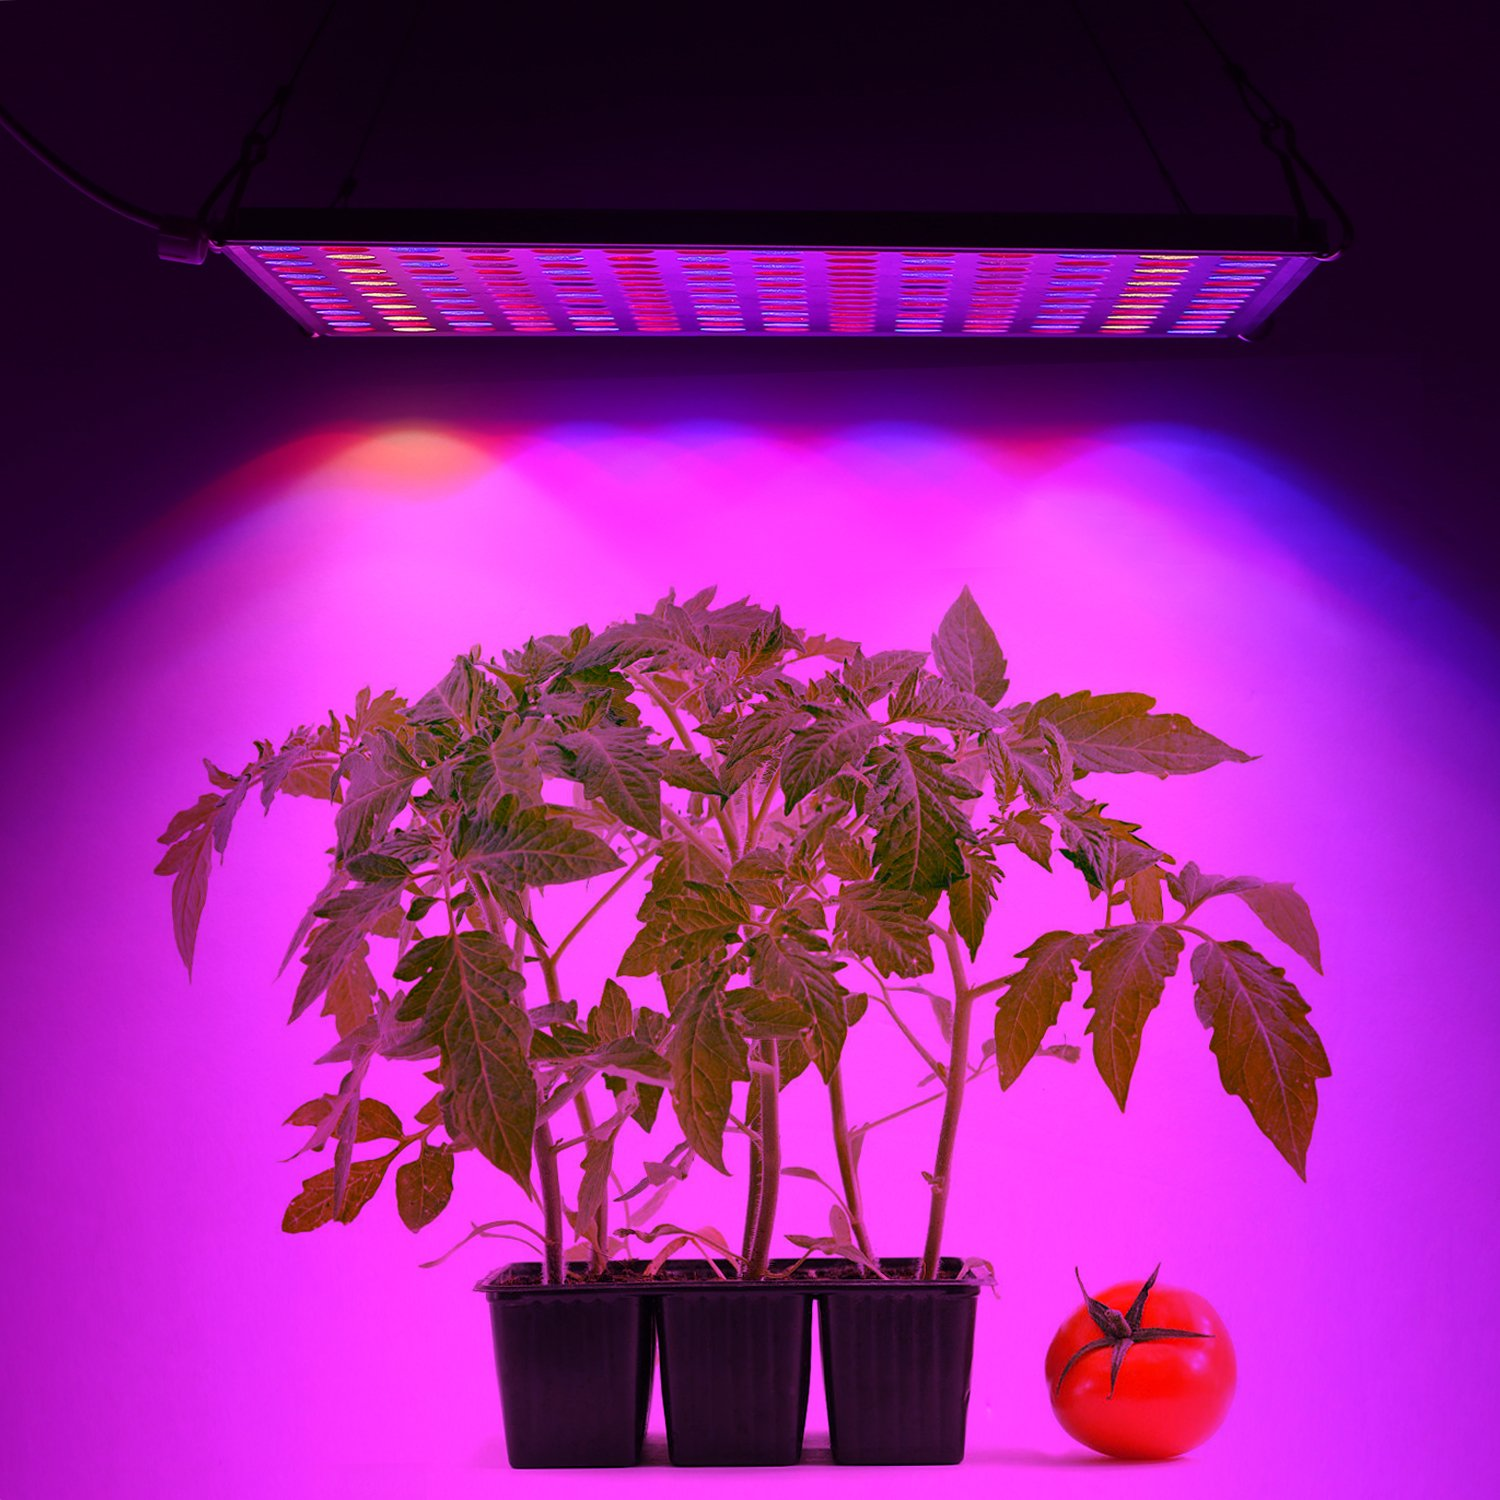 LED Grow Light for Indoor Plants,YGROW Upgraded 75W Growing Lamp Light Bulbs with Exclusive Full Spectrum for Greenhouse Hydroponic Plants from Seeding to Harvest by YGROW (Image #4)